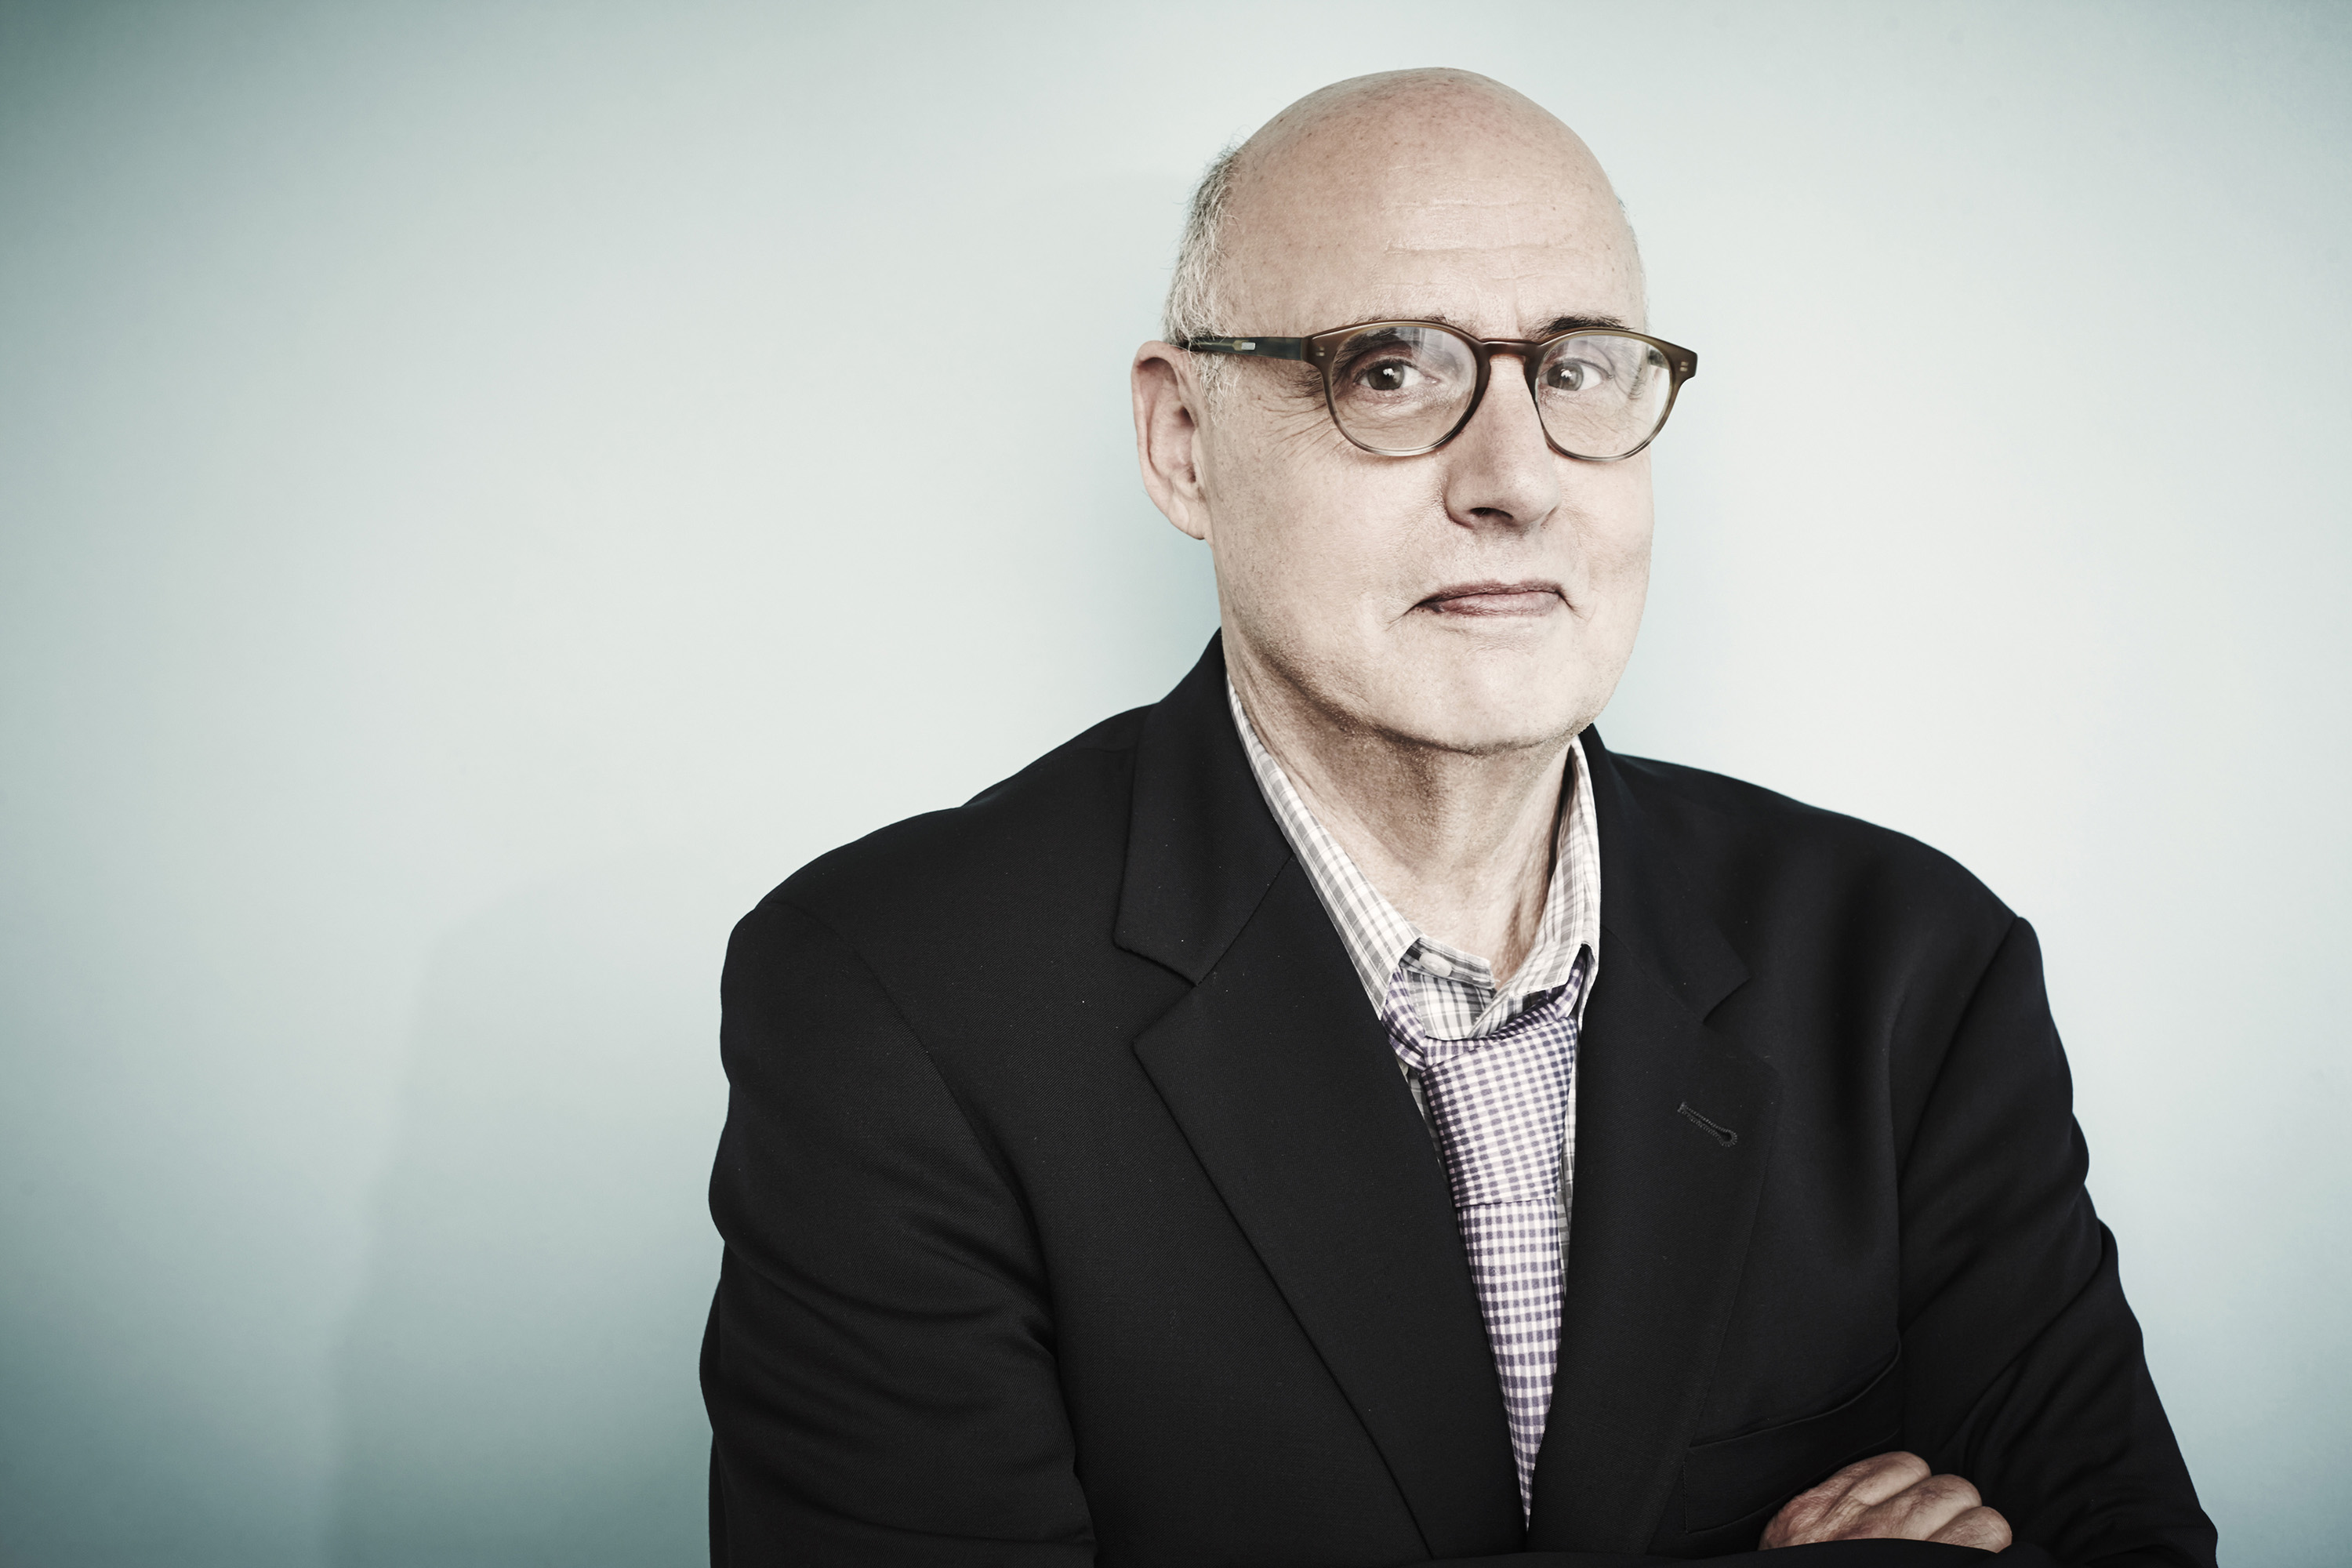 jeffrey tambor - photo #12